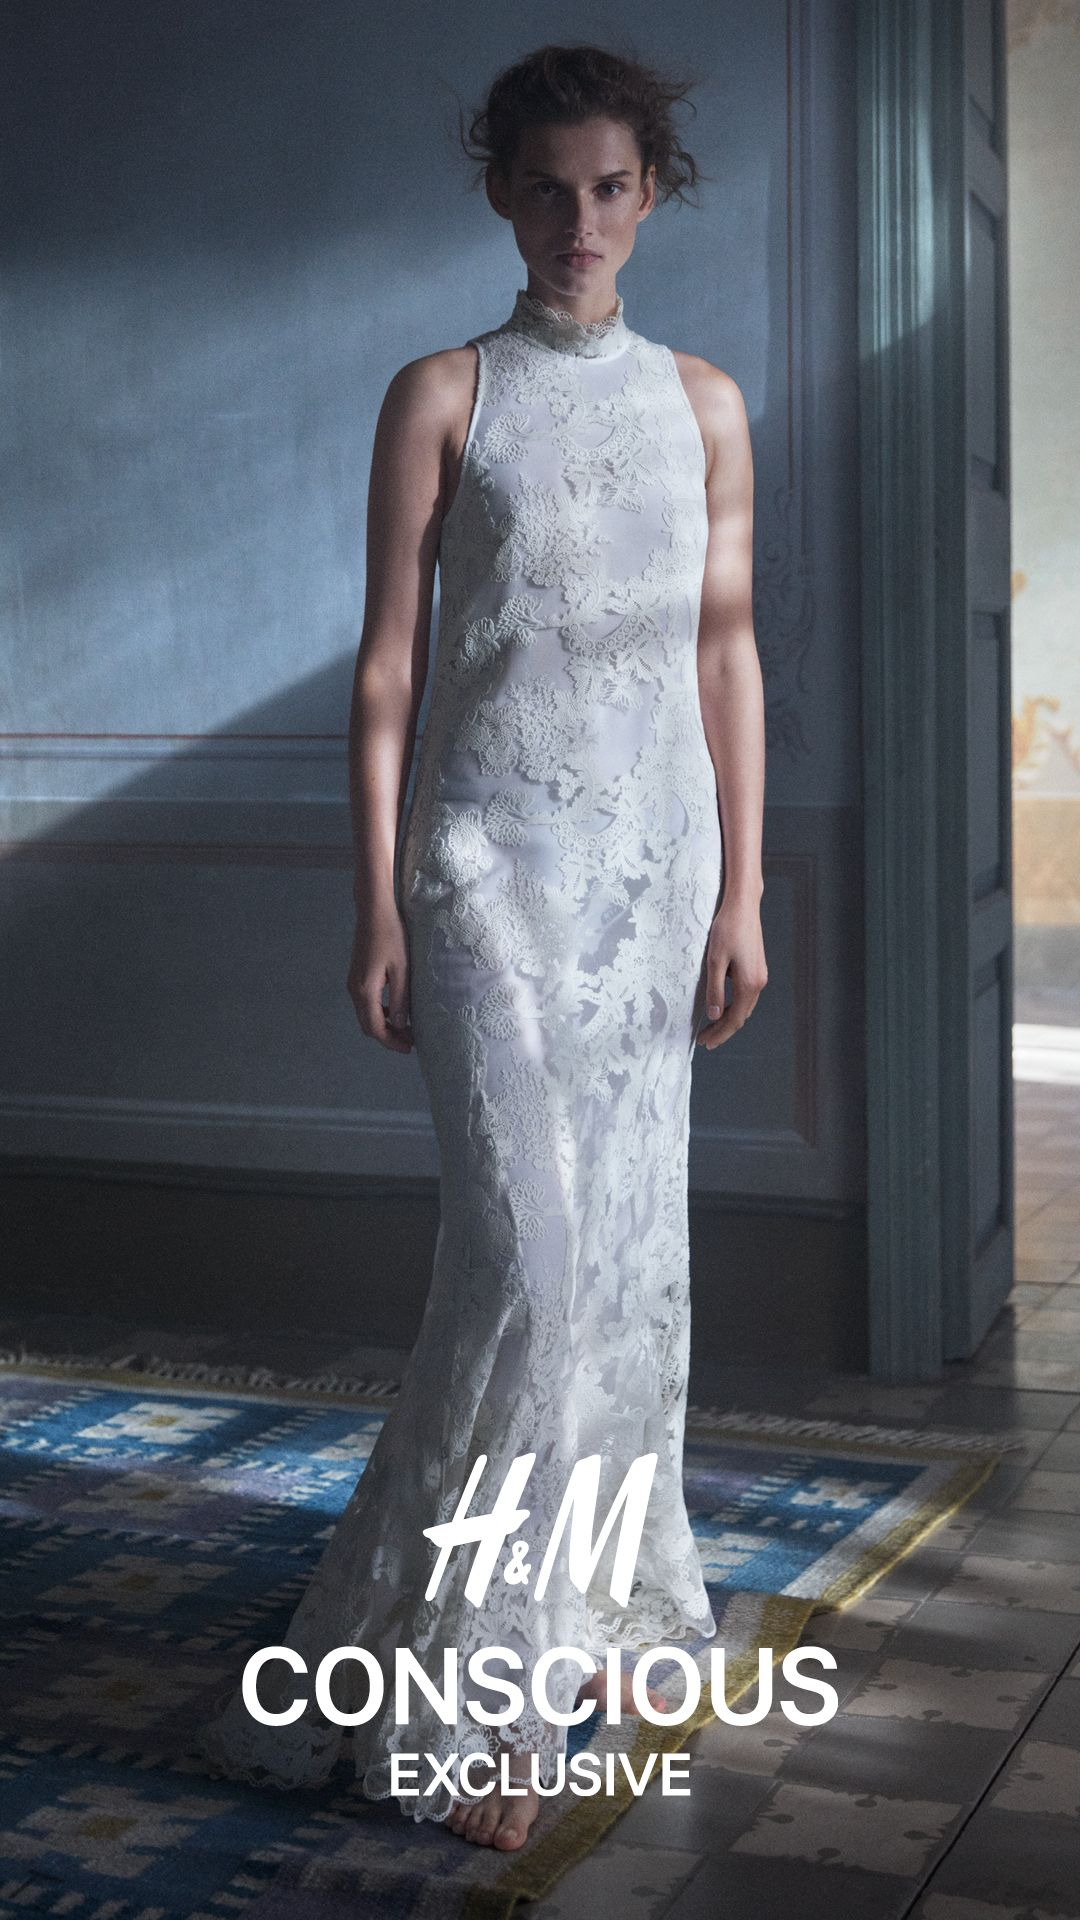 0b398ca3ae61 Sneak peek of H&M Conscious Exclusive 2018. Discover the beautiful collection  made with sustainable methods and materials such as organic cotton, recycled  ...